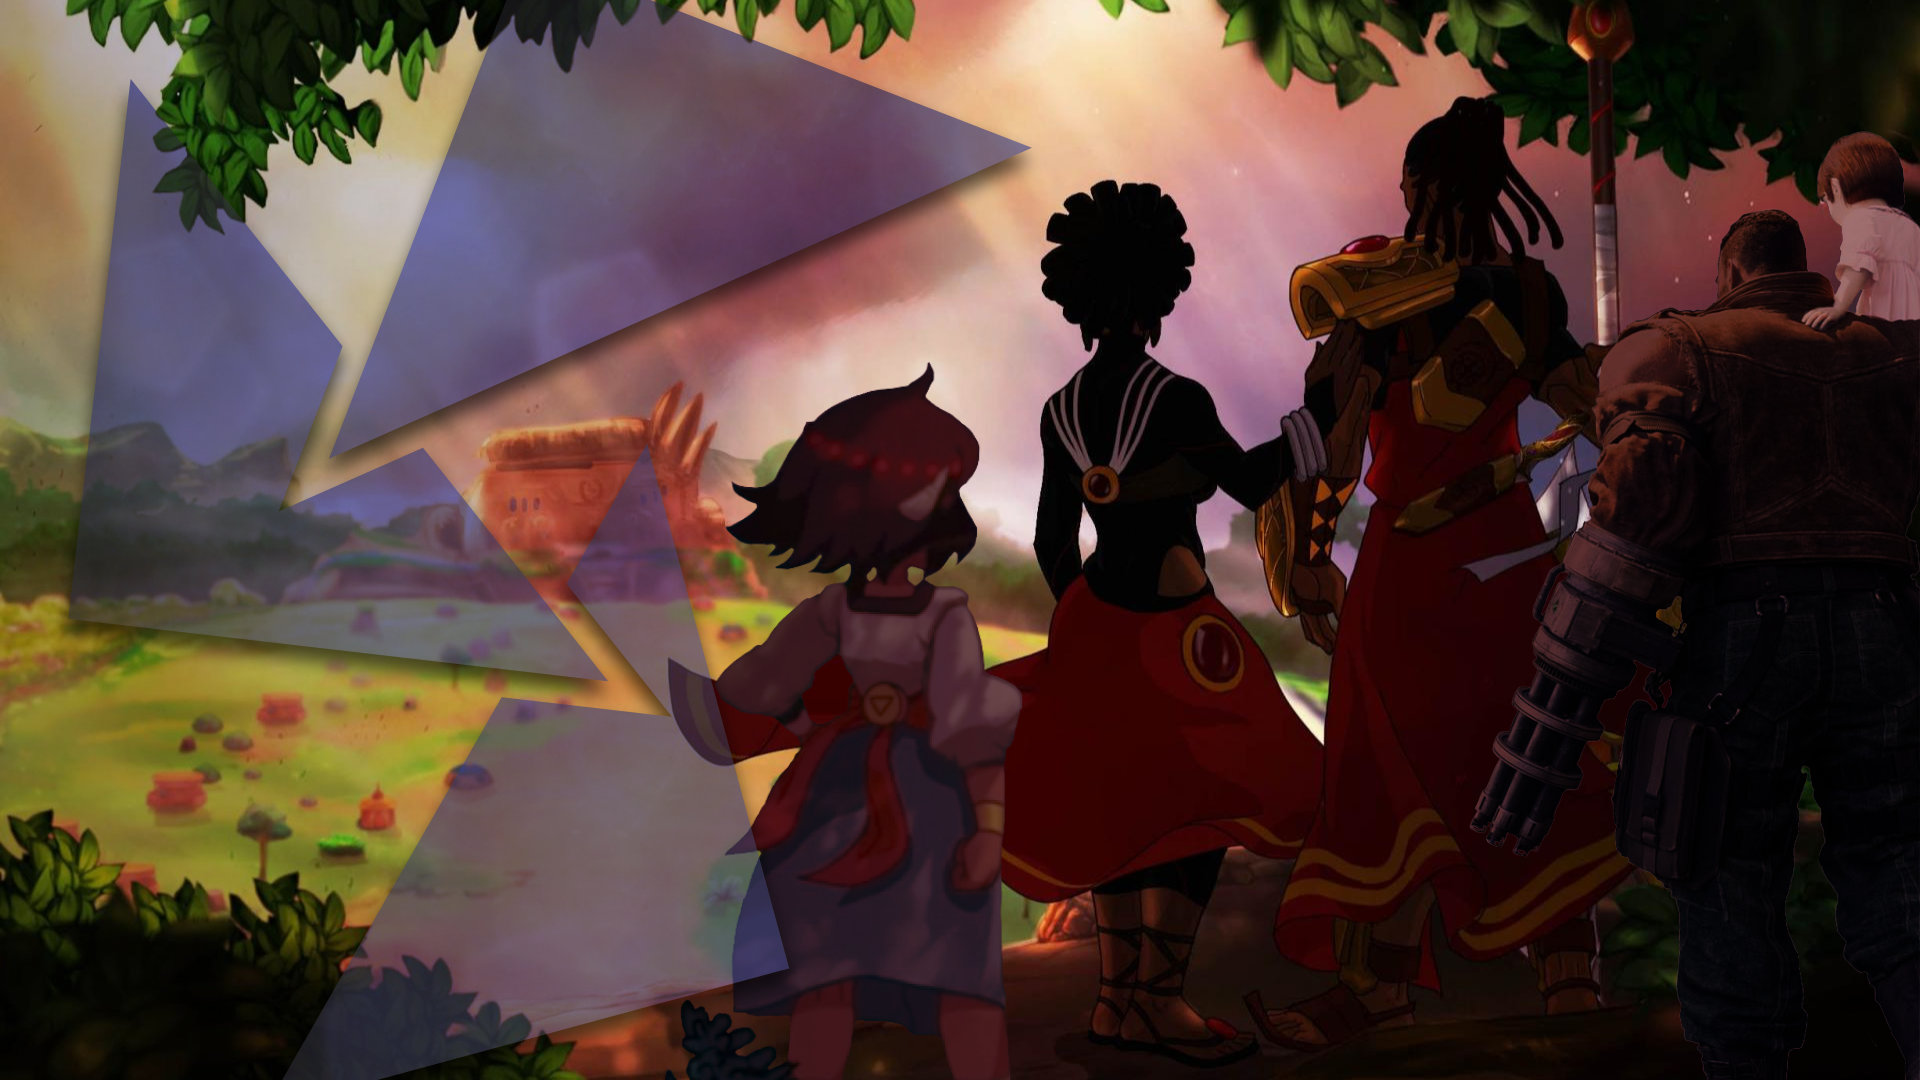 Video game art from Aurion: Legacy of the Kori-Odan depicts two African heroes looking on their village. A character from the game Indivisible and two characters from Final Fantasy VII Remake are also imposed into the sunset image.